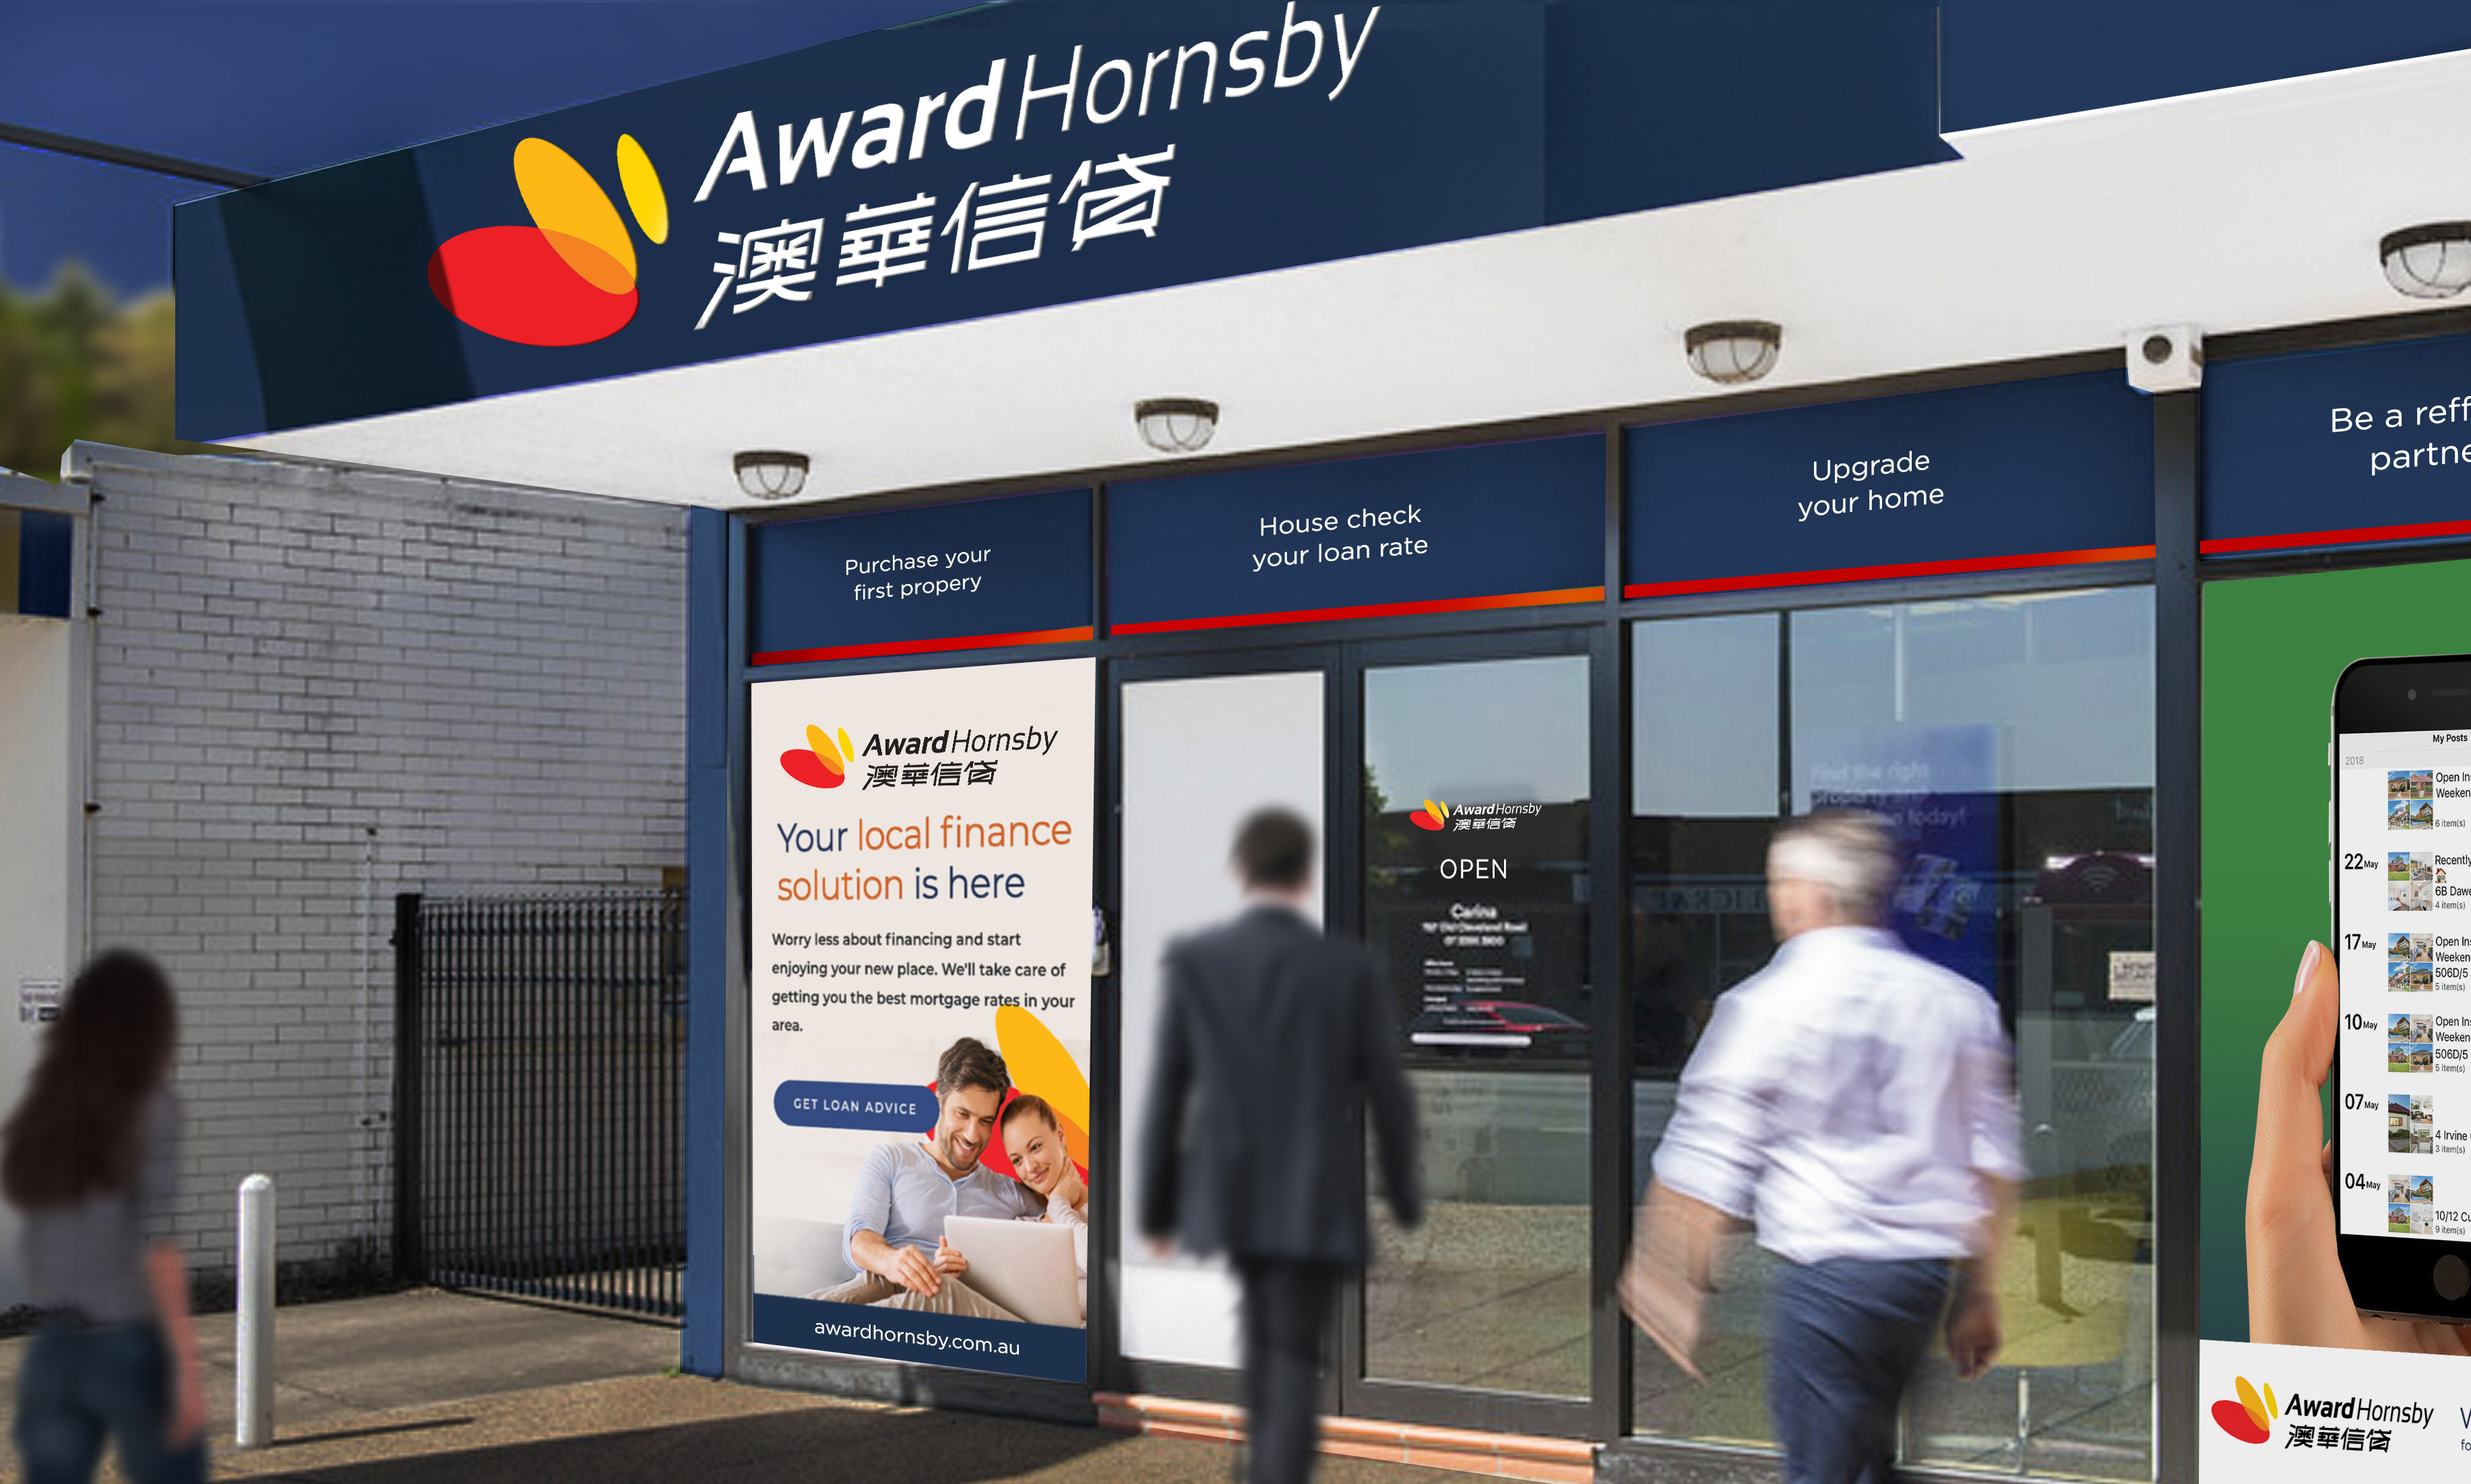 1-AwardHornsby-Special-1